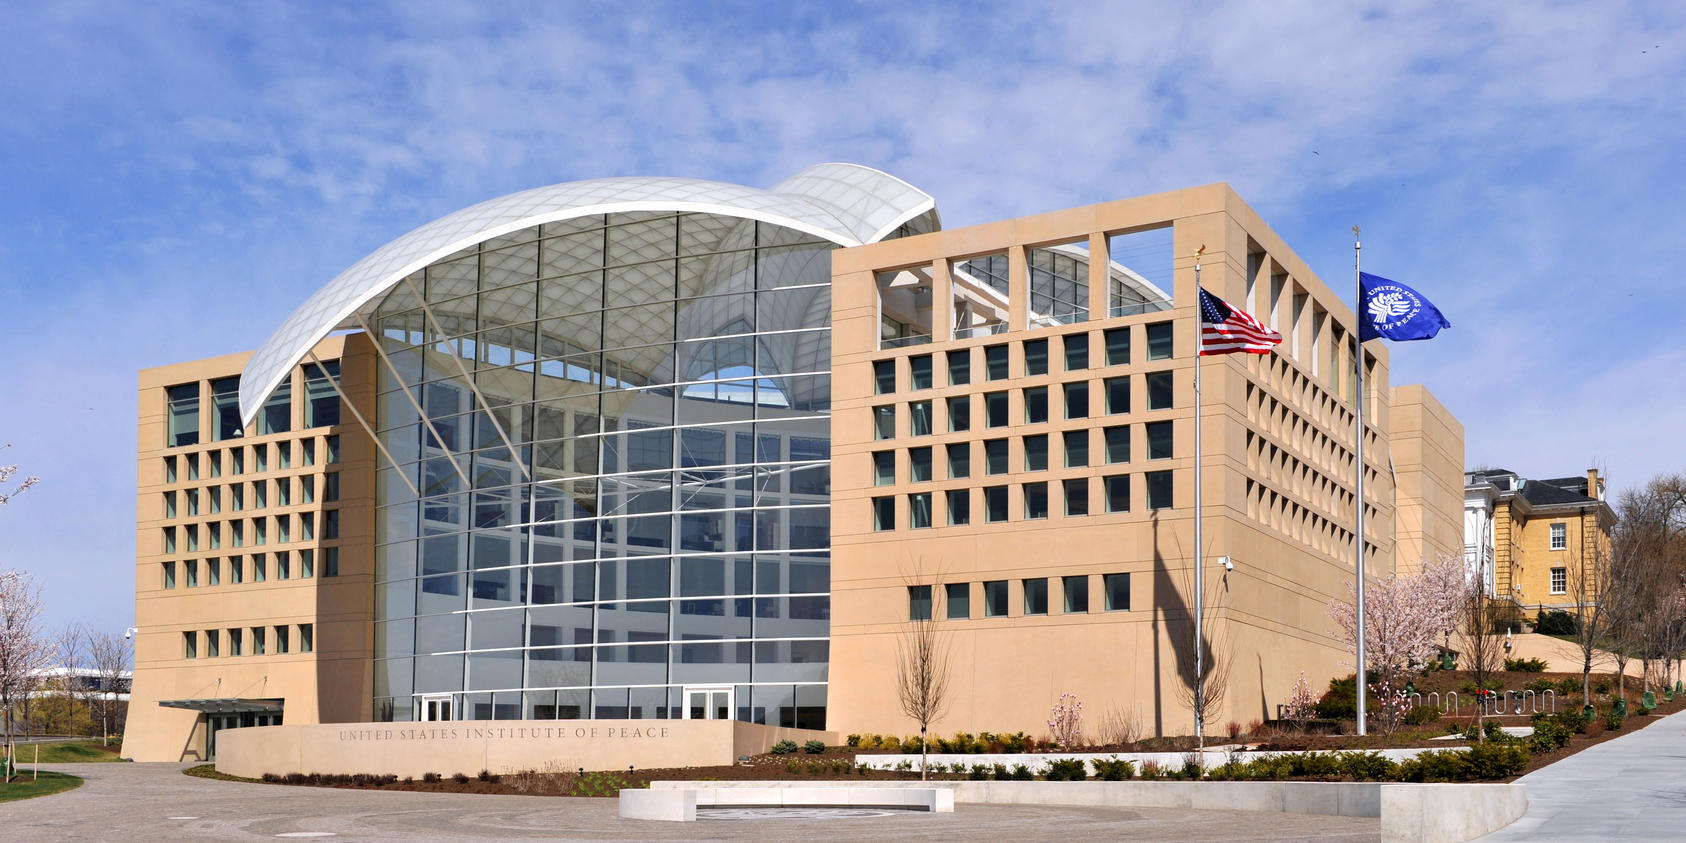 USIP Headquarters